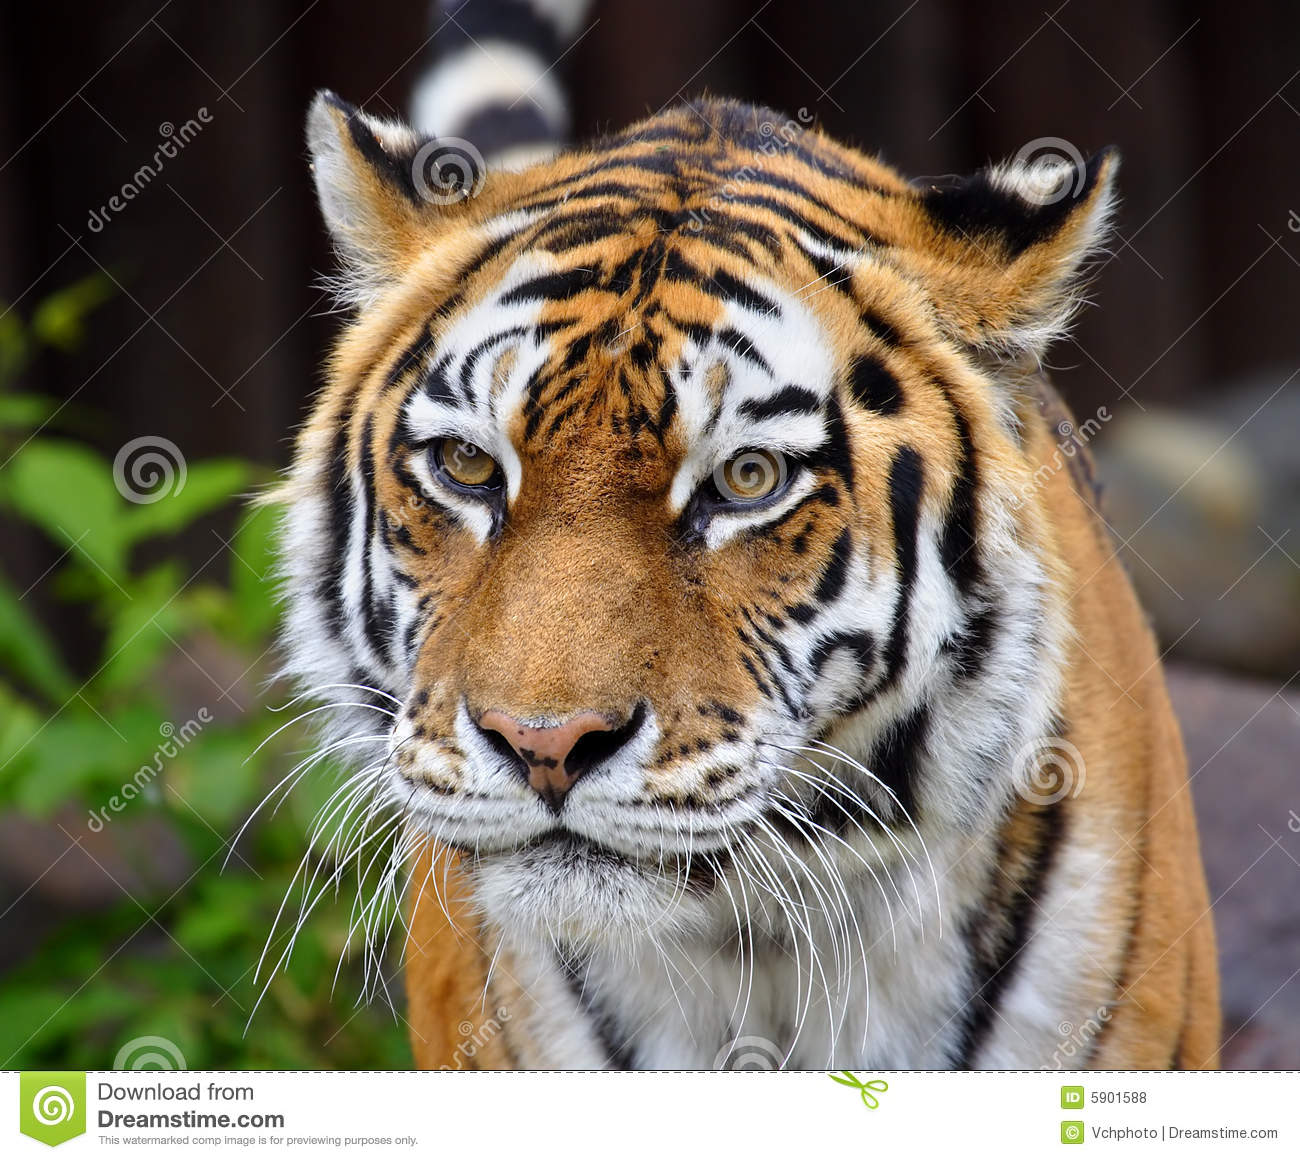 Great Tiger Royalty Free Stock Photos Image 5901588